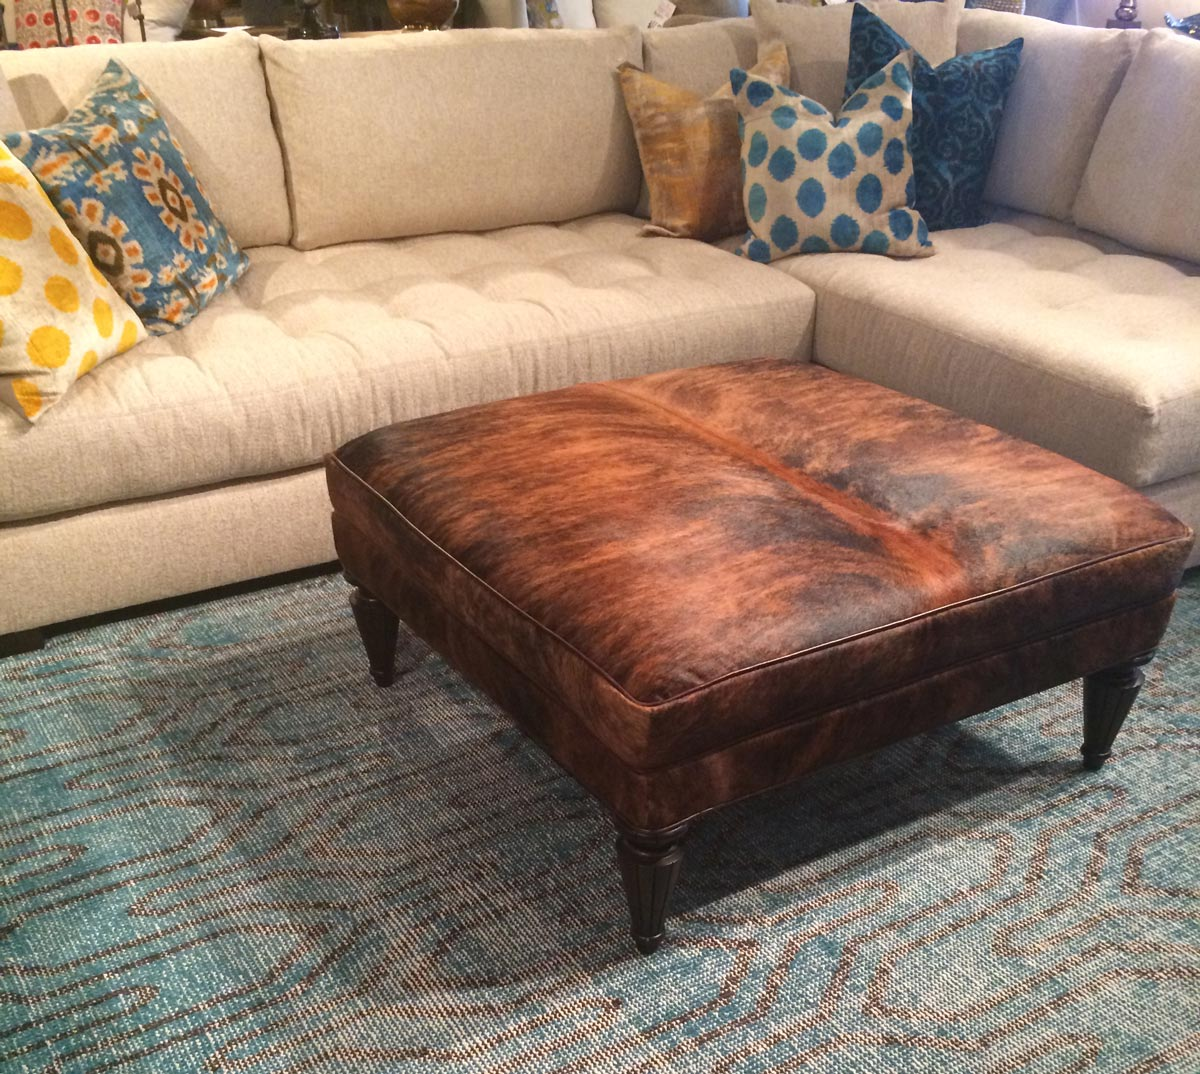 Who says quality home furnishings don't exist anymore? You will find them at McNabb & Risley! - McNabb & Risley